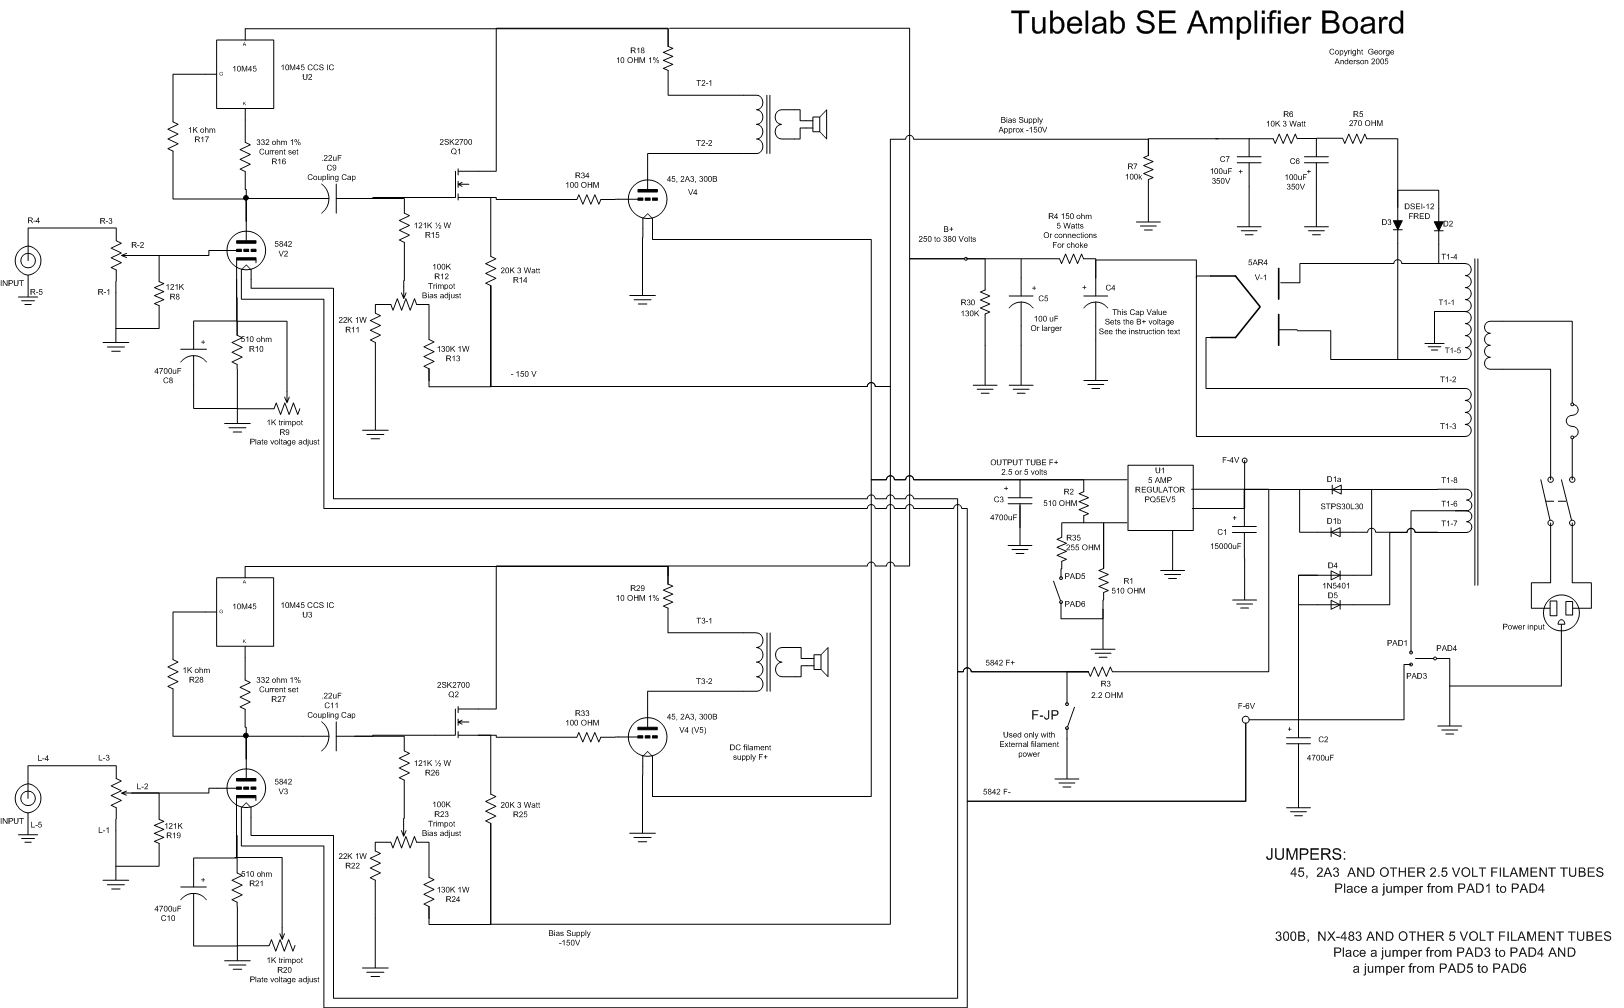 Schematic Tubelab Design Schematics Designs Se